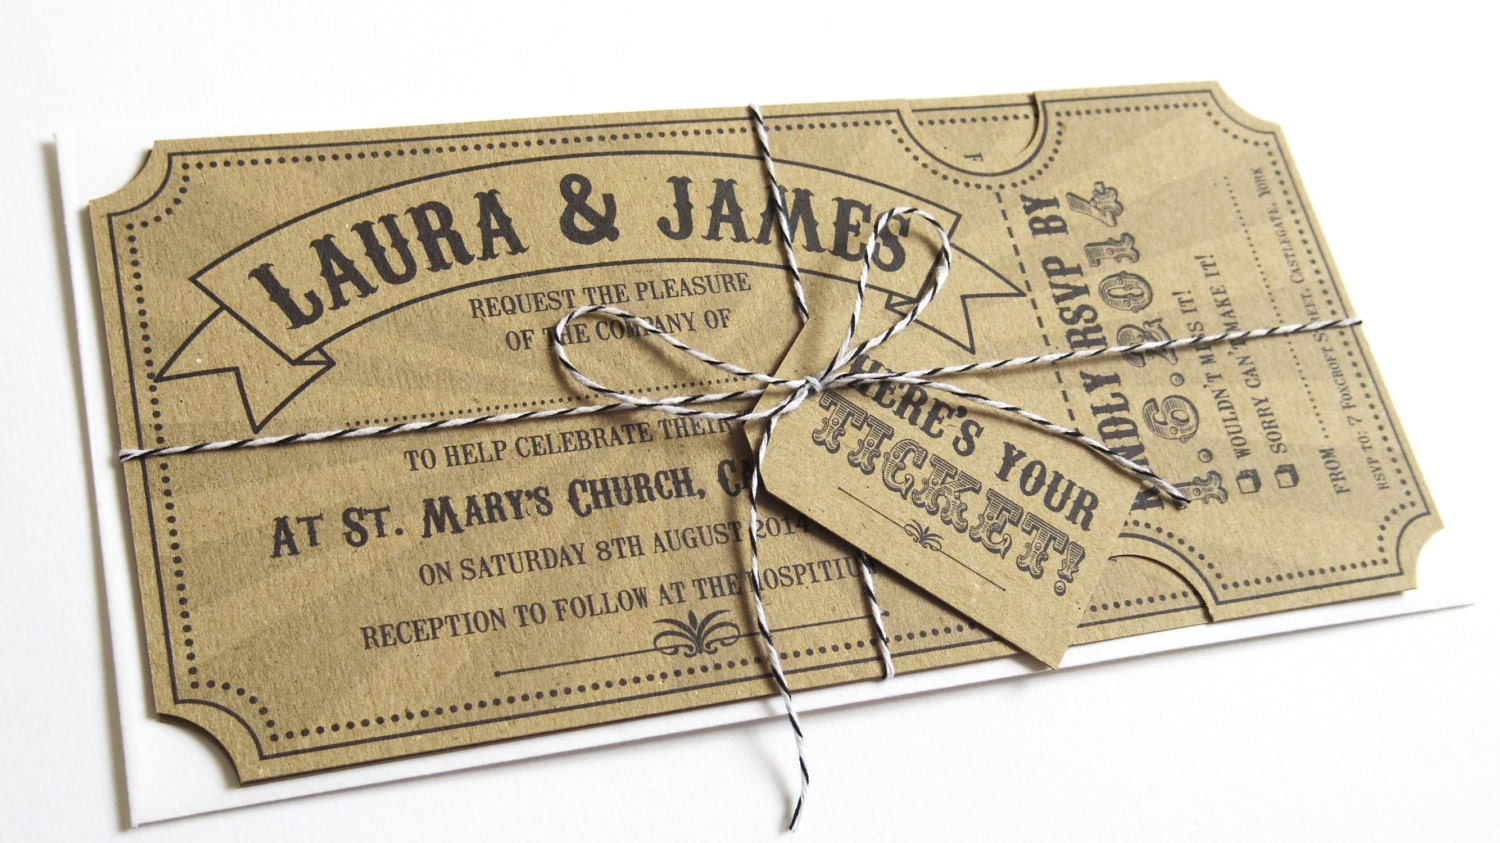 Wedding Invitation Tickets: Circus Ticket Wedding Invitation Fun Fair Carnival